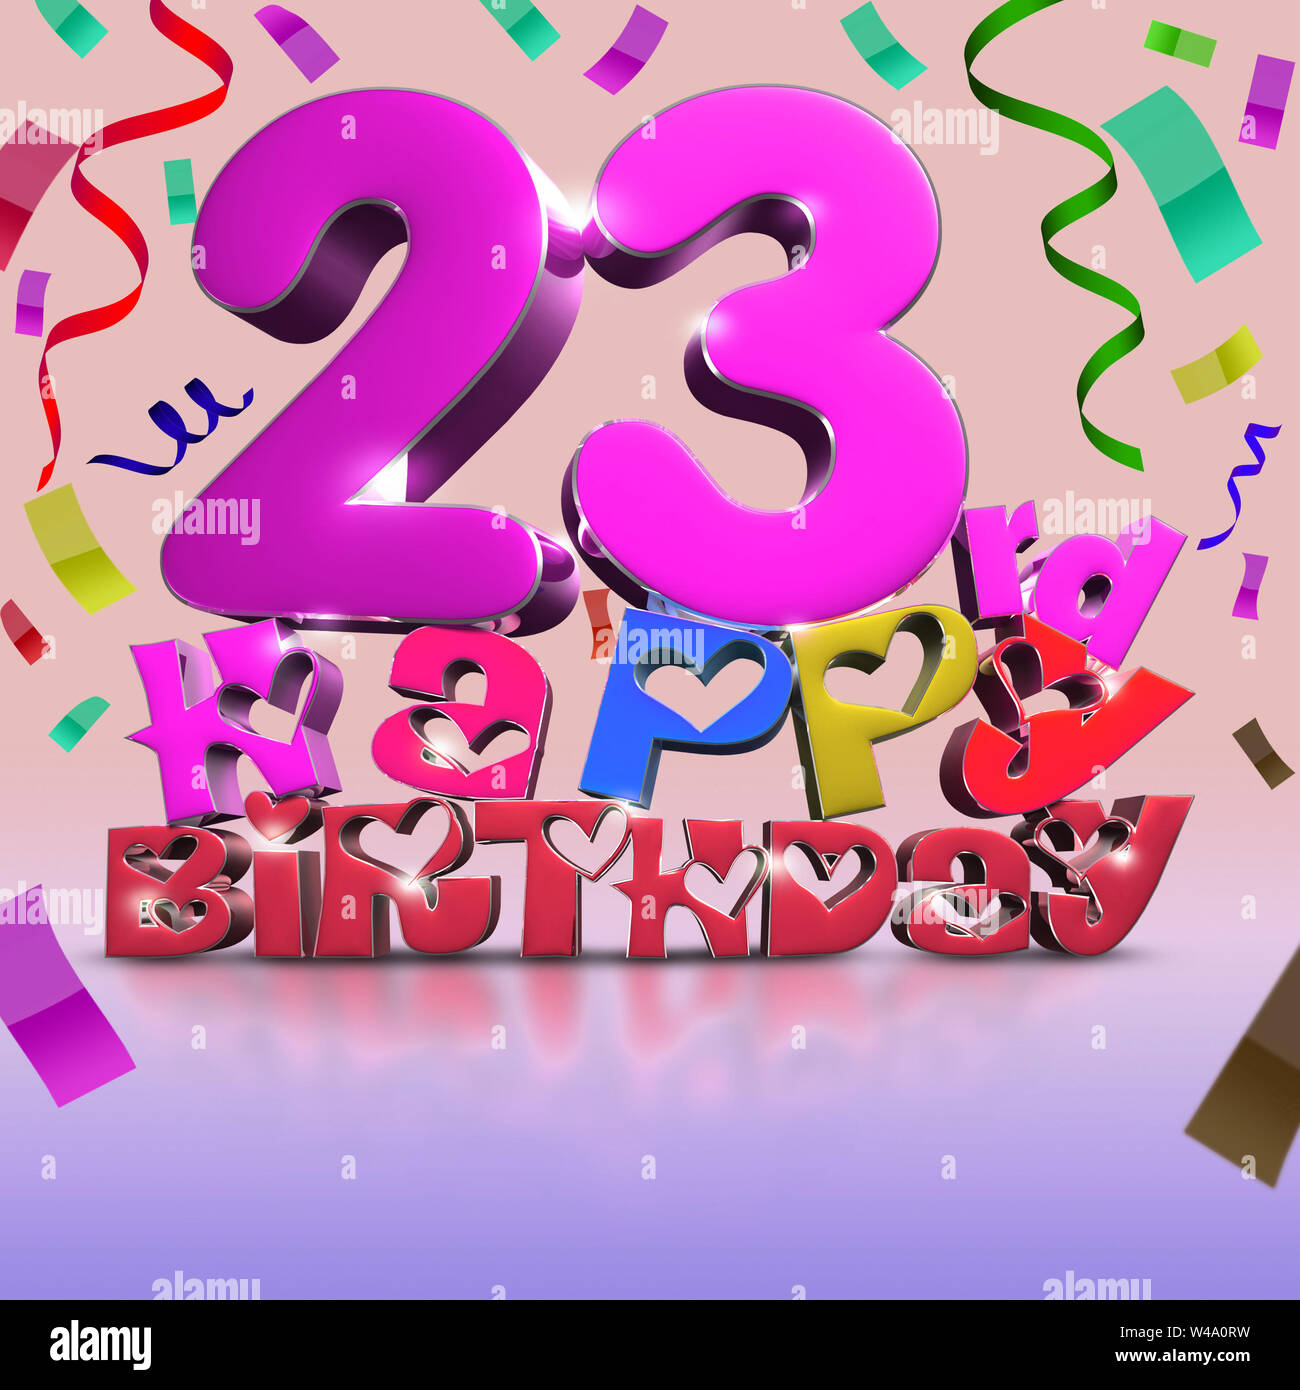 23 Rd Happy Birthday 3d Rendering Ribbon As Background